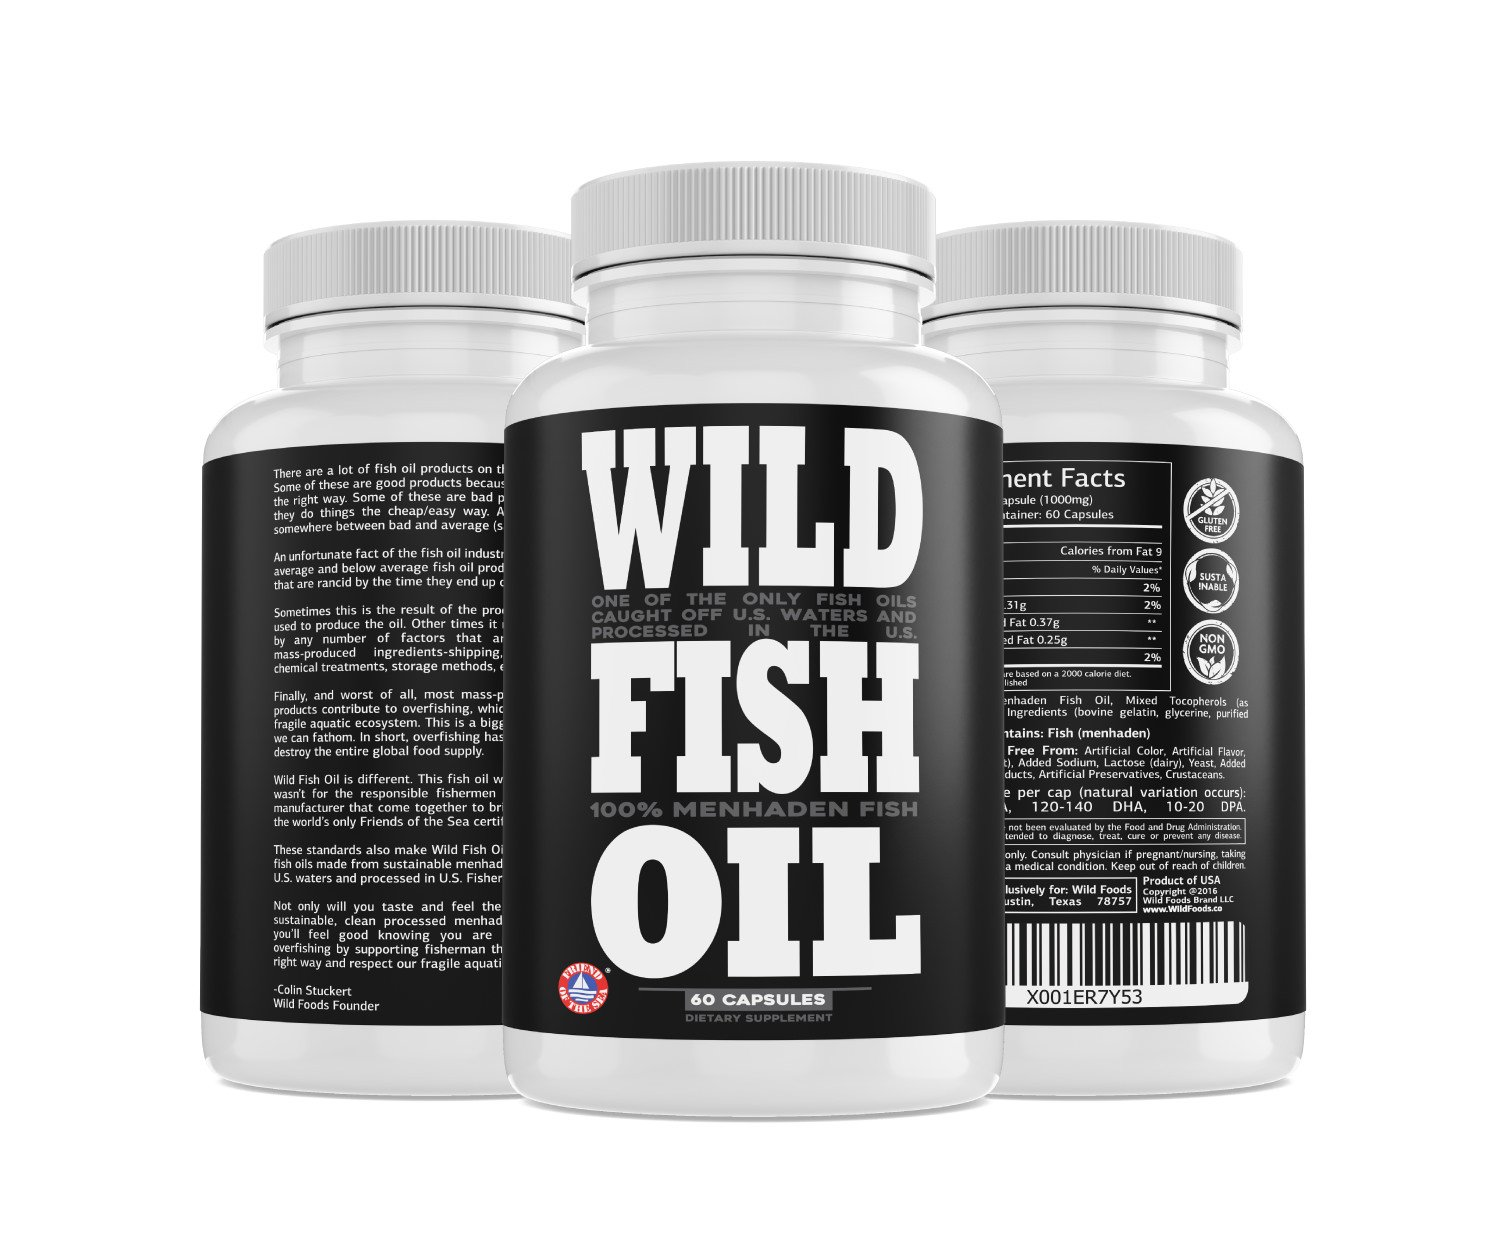 Wild Fish Oil, U.S. Caught Omega-3 DPA, DHA & EPA - 60 Burpless Gel caps, Non-GMO, Sustainable Certified, Tested for Purity (60 Capsules) by Wild Foods